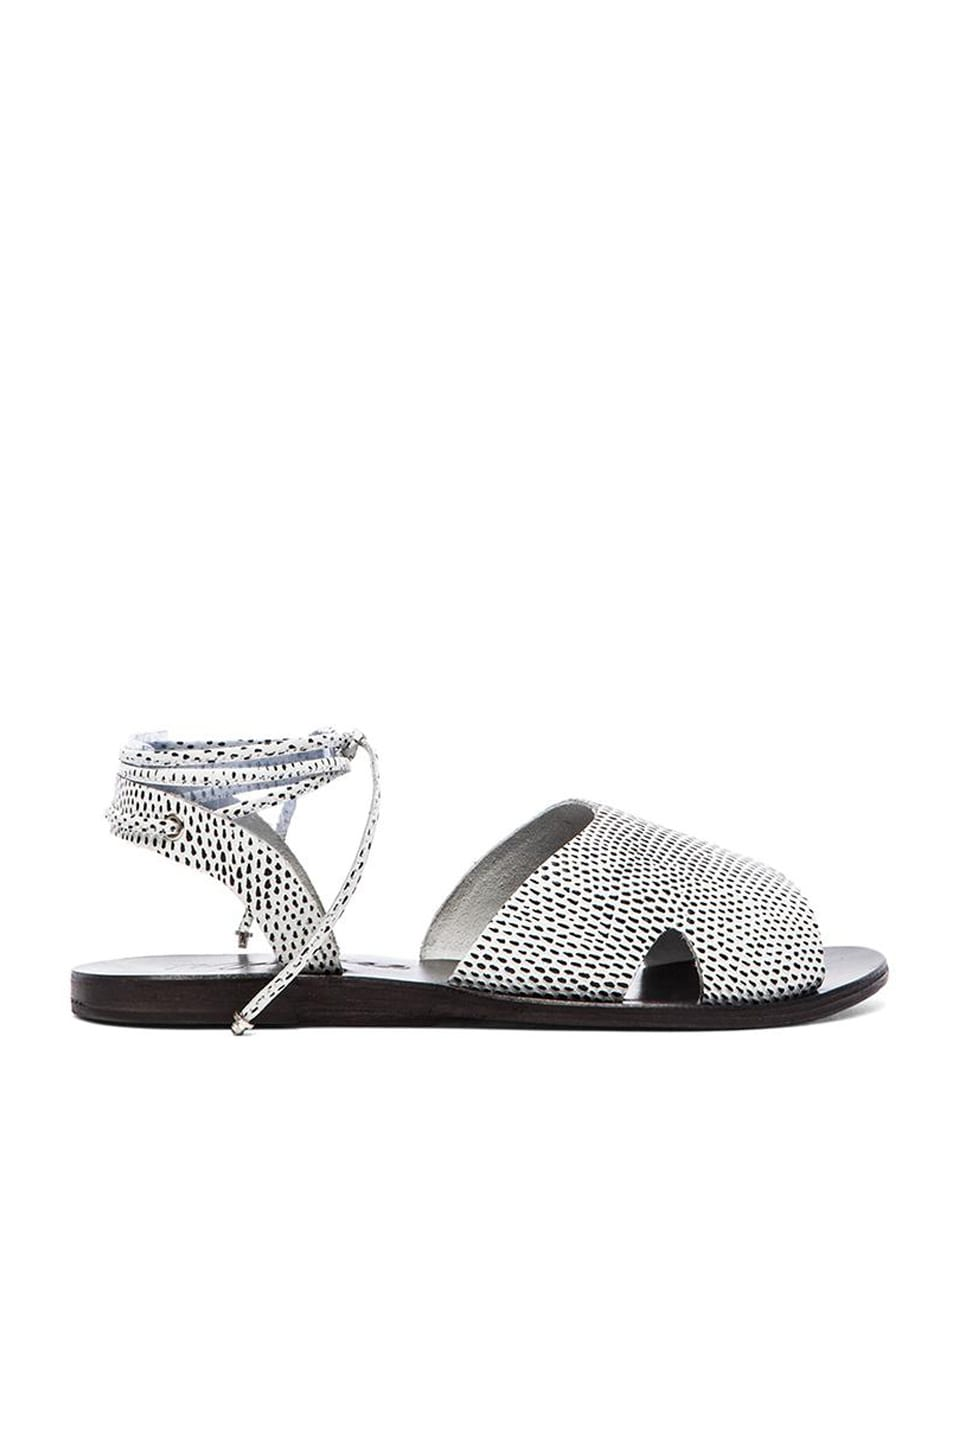 Matisse Townie Sandal in Black